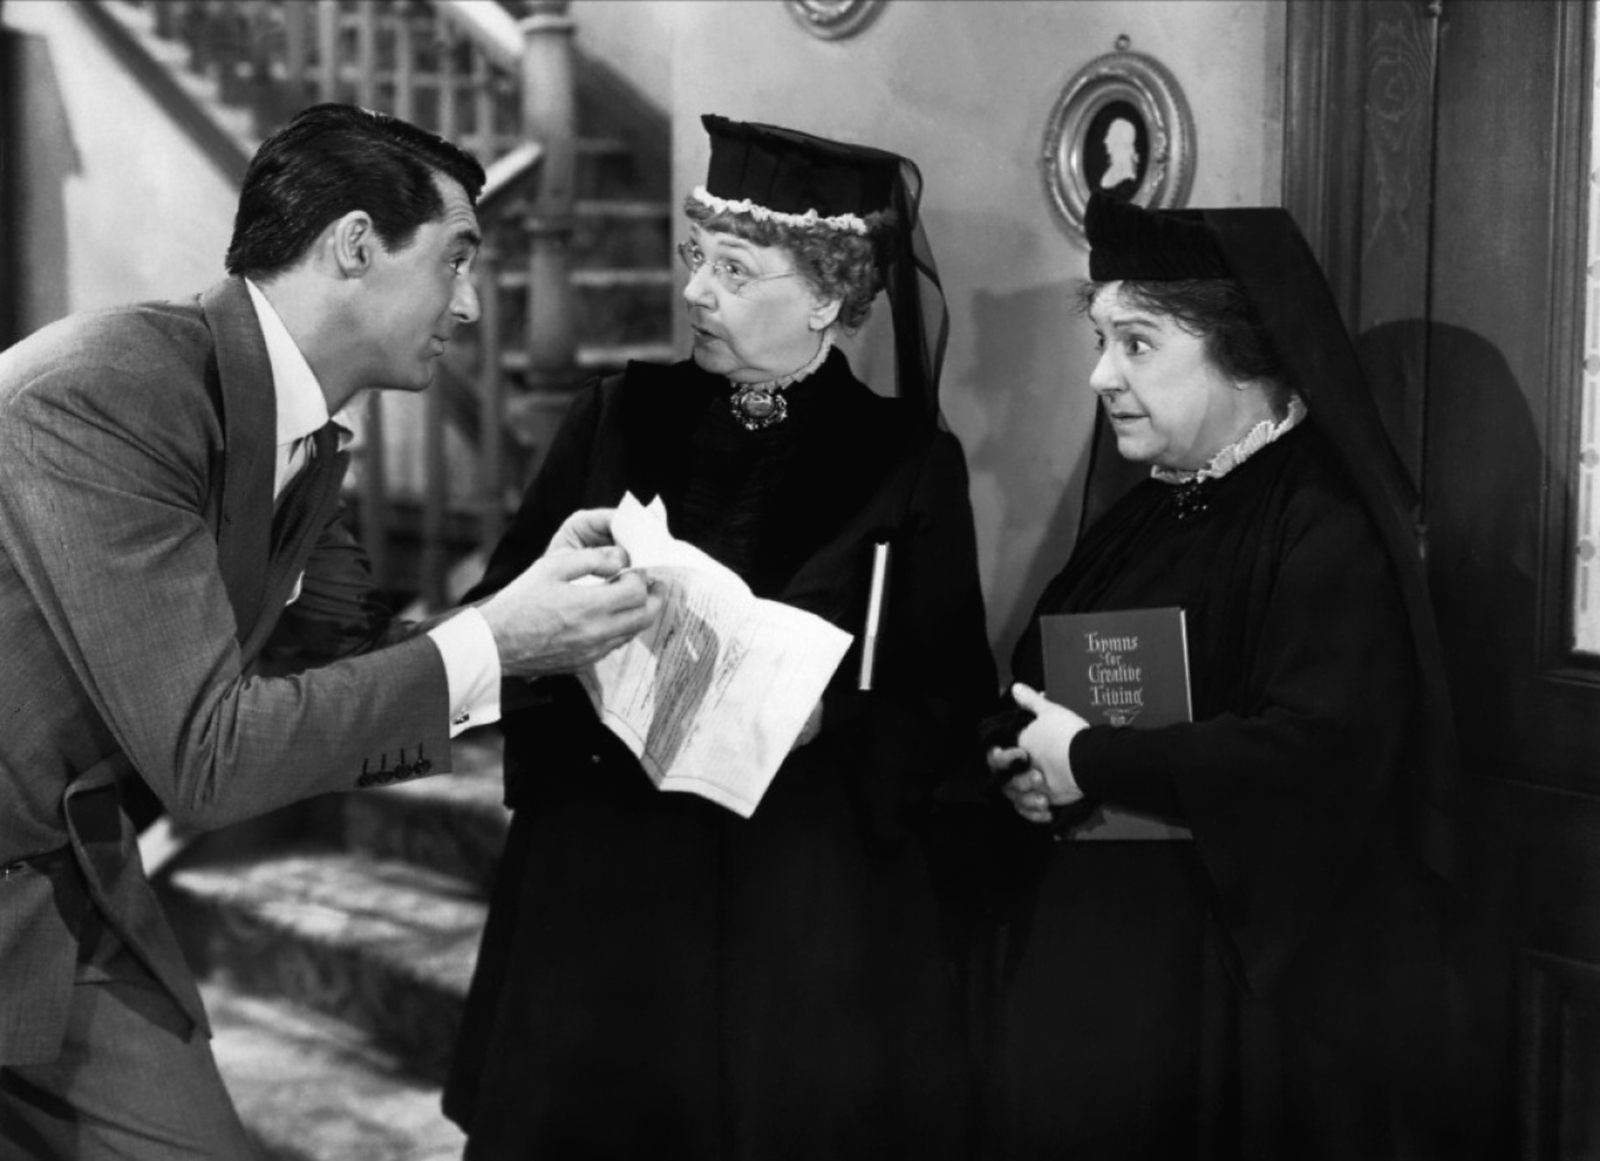 arsenic and old lace Arsenic and old lace movie  get youtube without the  find out why close arsenic and old lace (1/10) movie clip - the gentleman in the window seat.